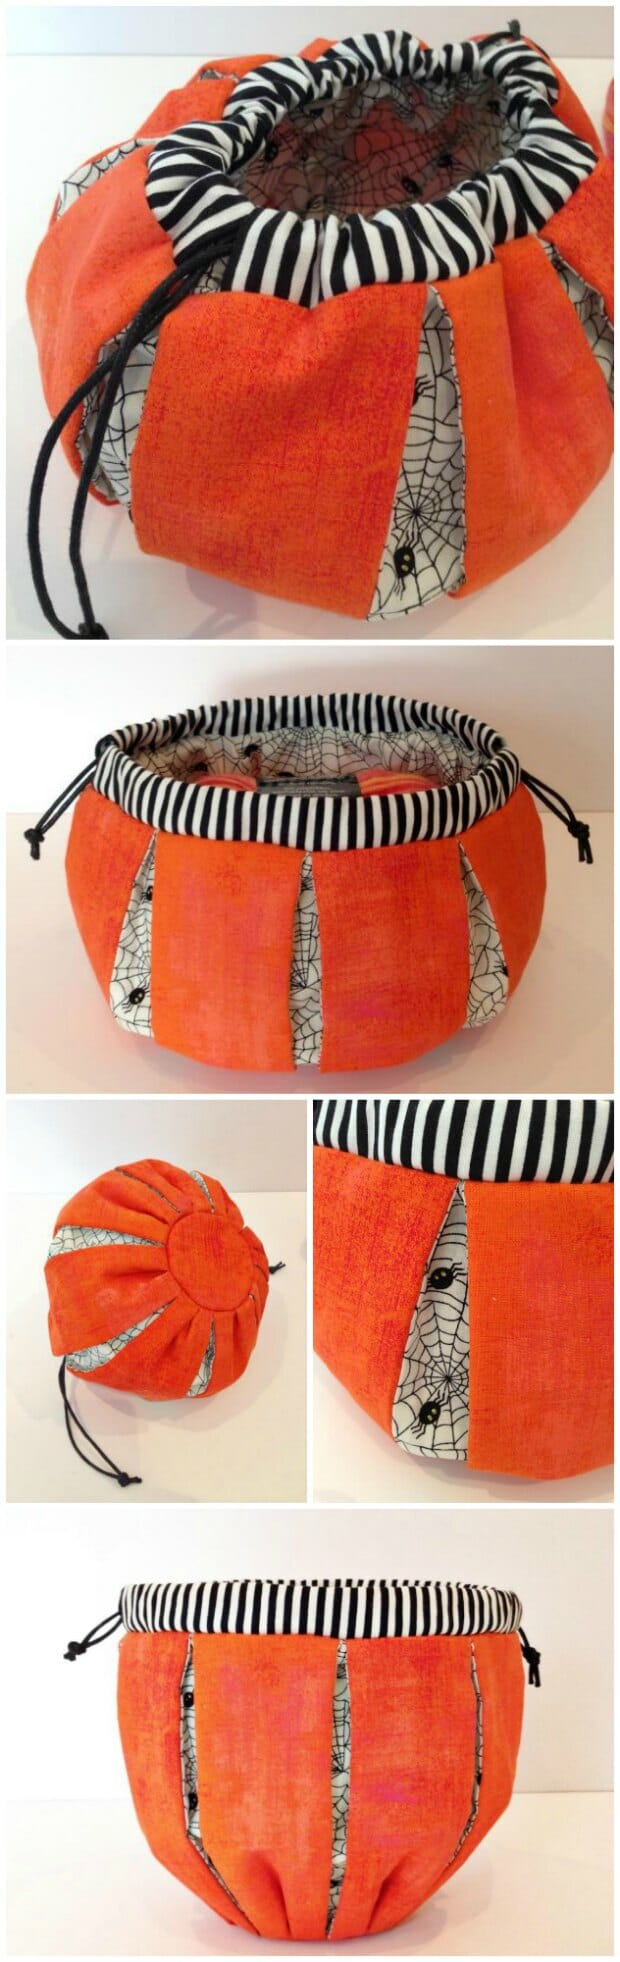 Sewing pattern for a drawstring Halloween Pumpkin treat bag. My grandkids are going to love these, but with other fabrics, these would make good gift bags too. Christmas is coming!